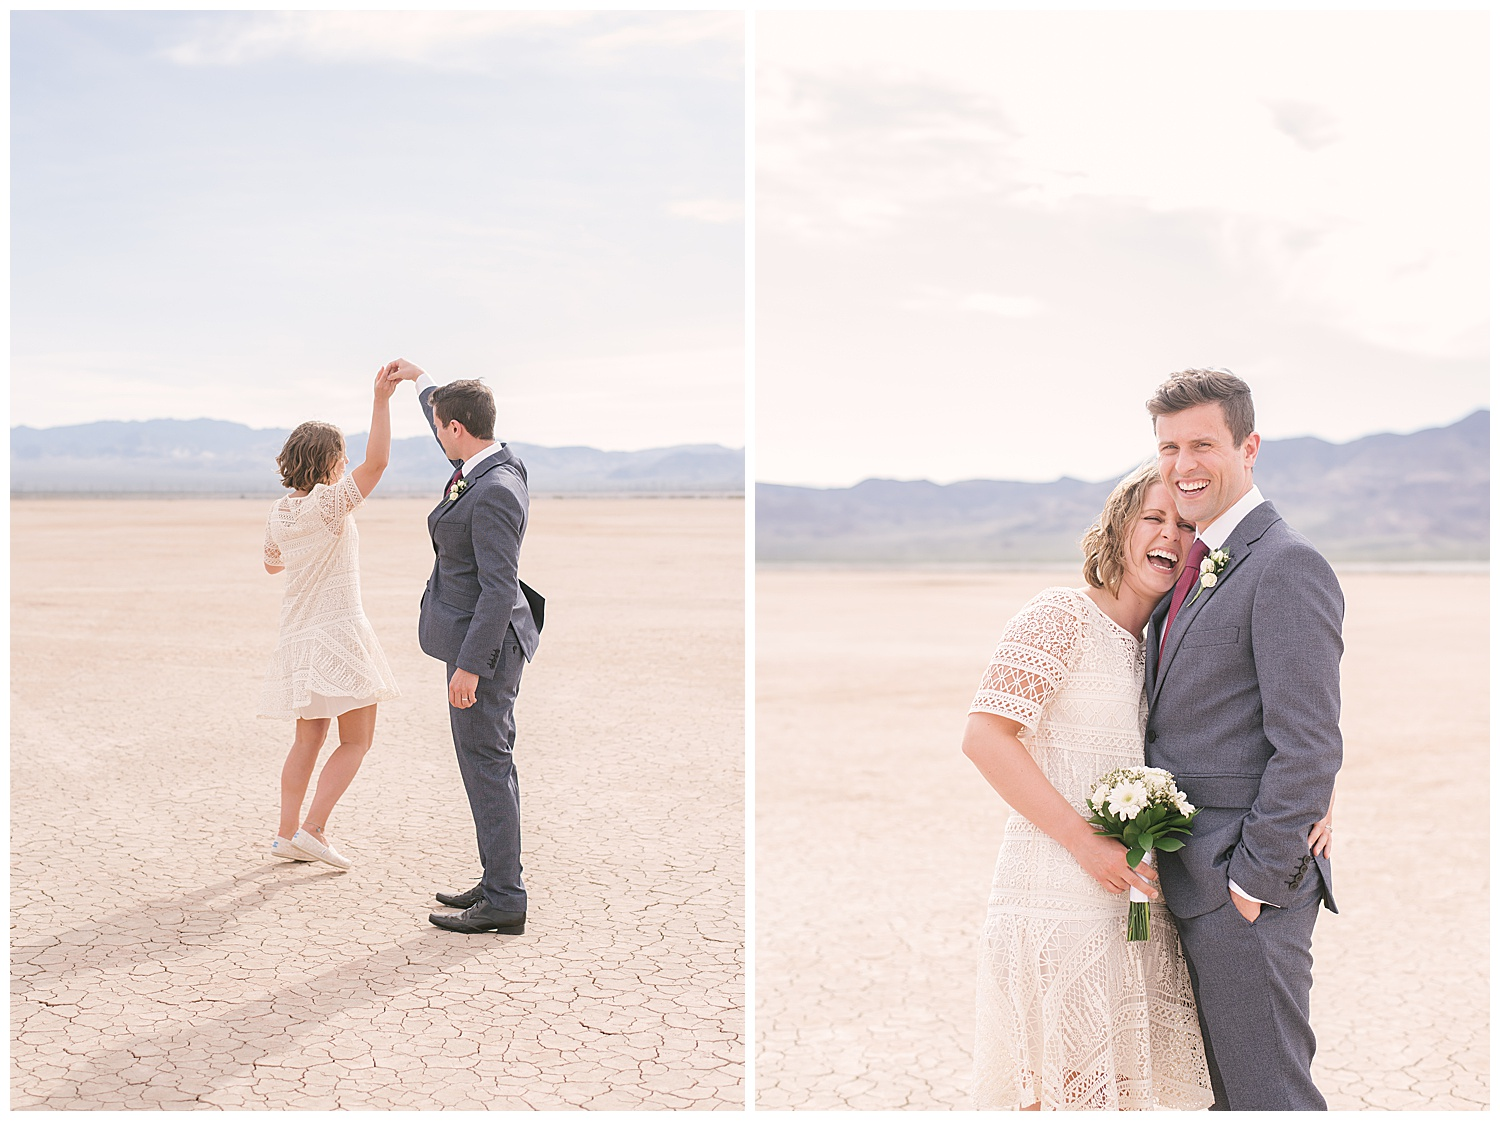 dry-lake-bed-las-vegas-elopement-photographer-13.jpg